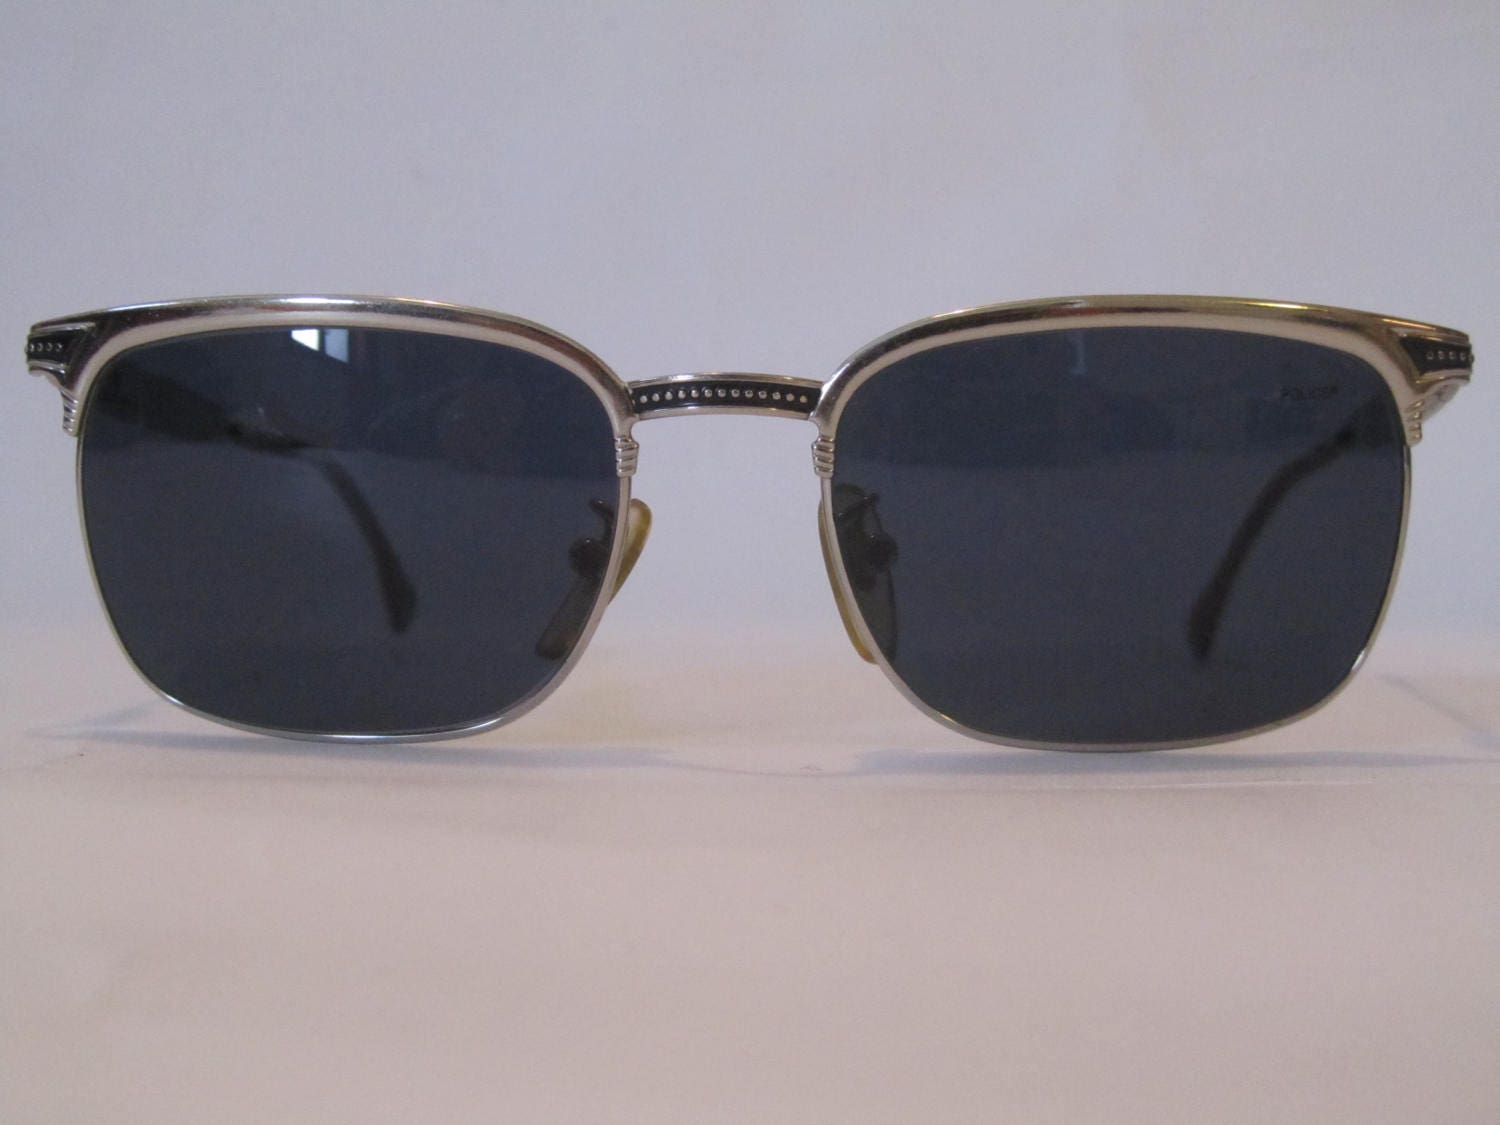 Vintage Sunglasses Police sunglasses clubmaster made in Italy